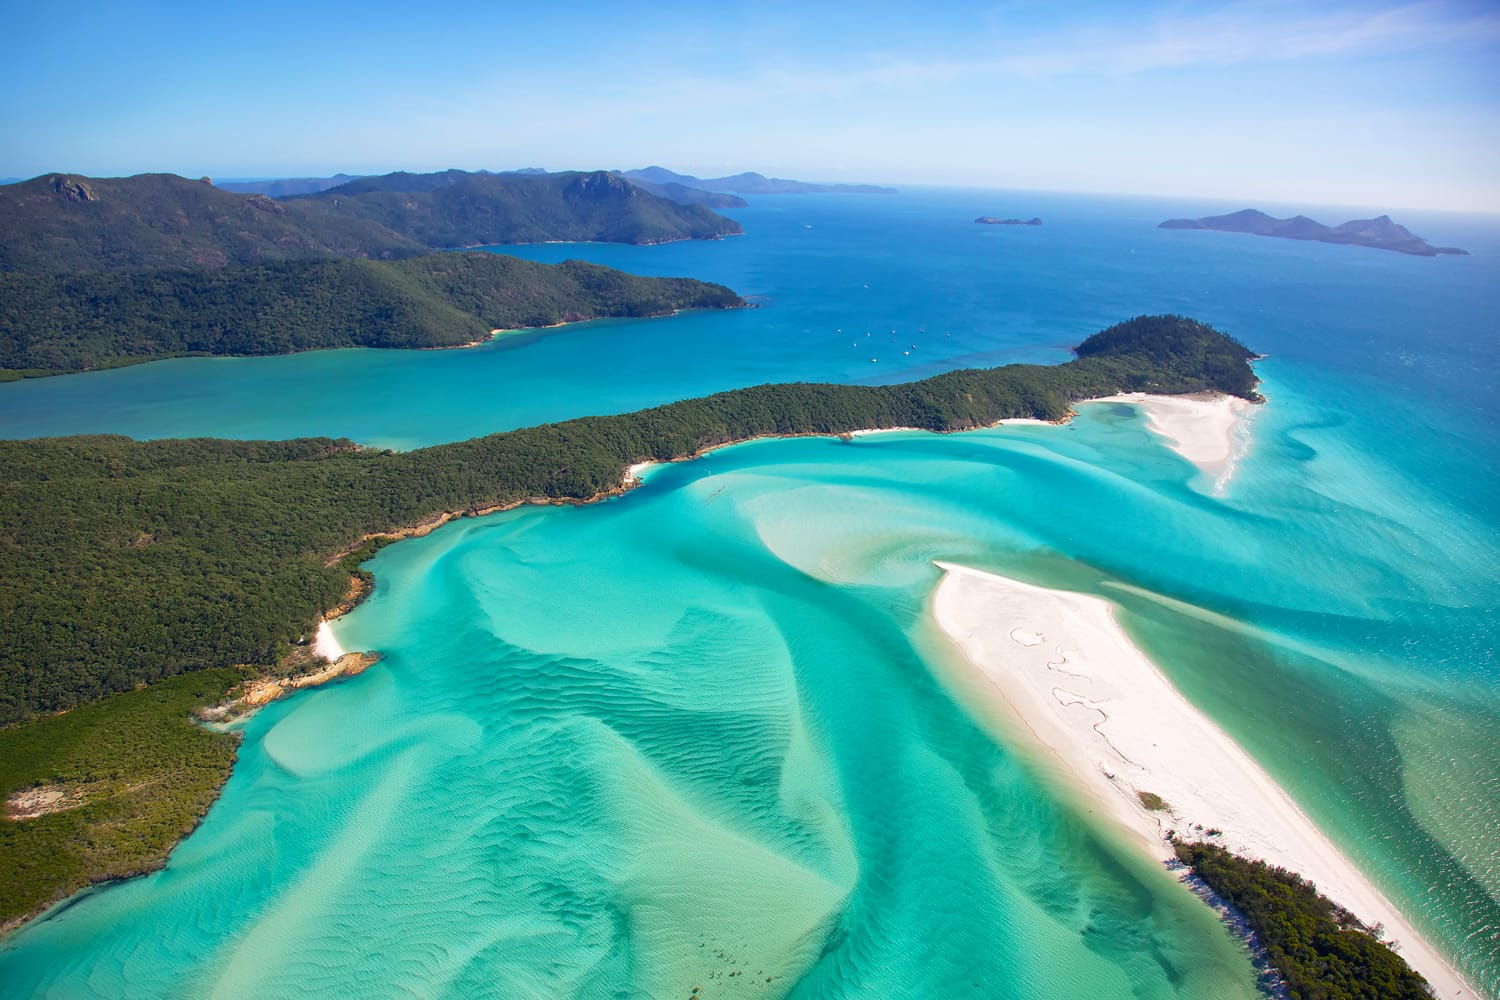 Whitehaven Beach in the Whitsundays Islands National Park in Australia